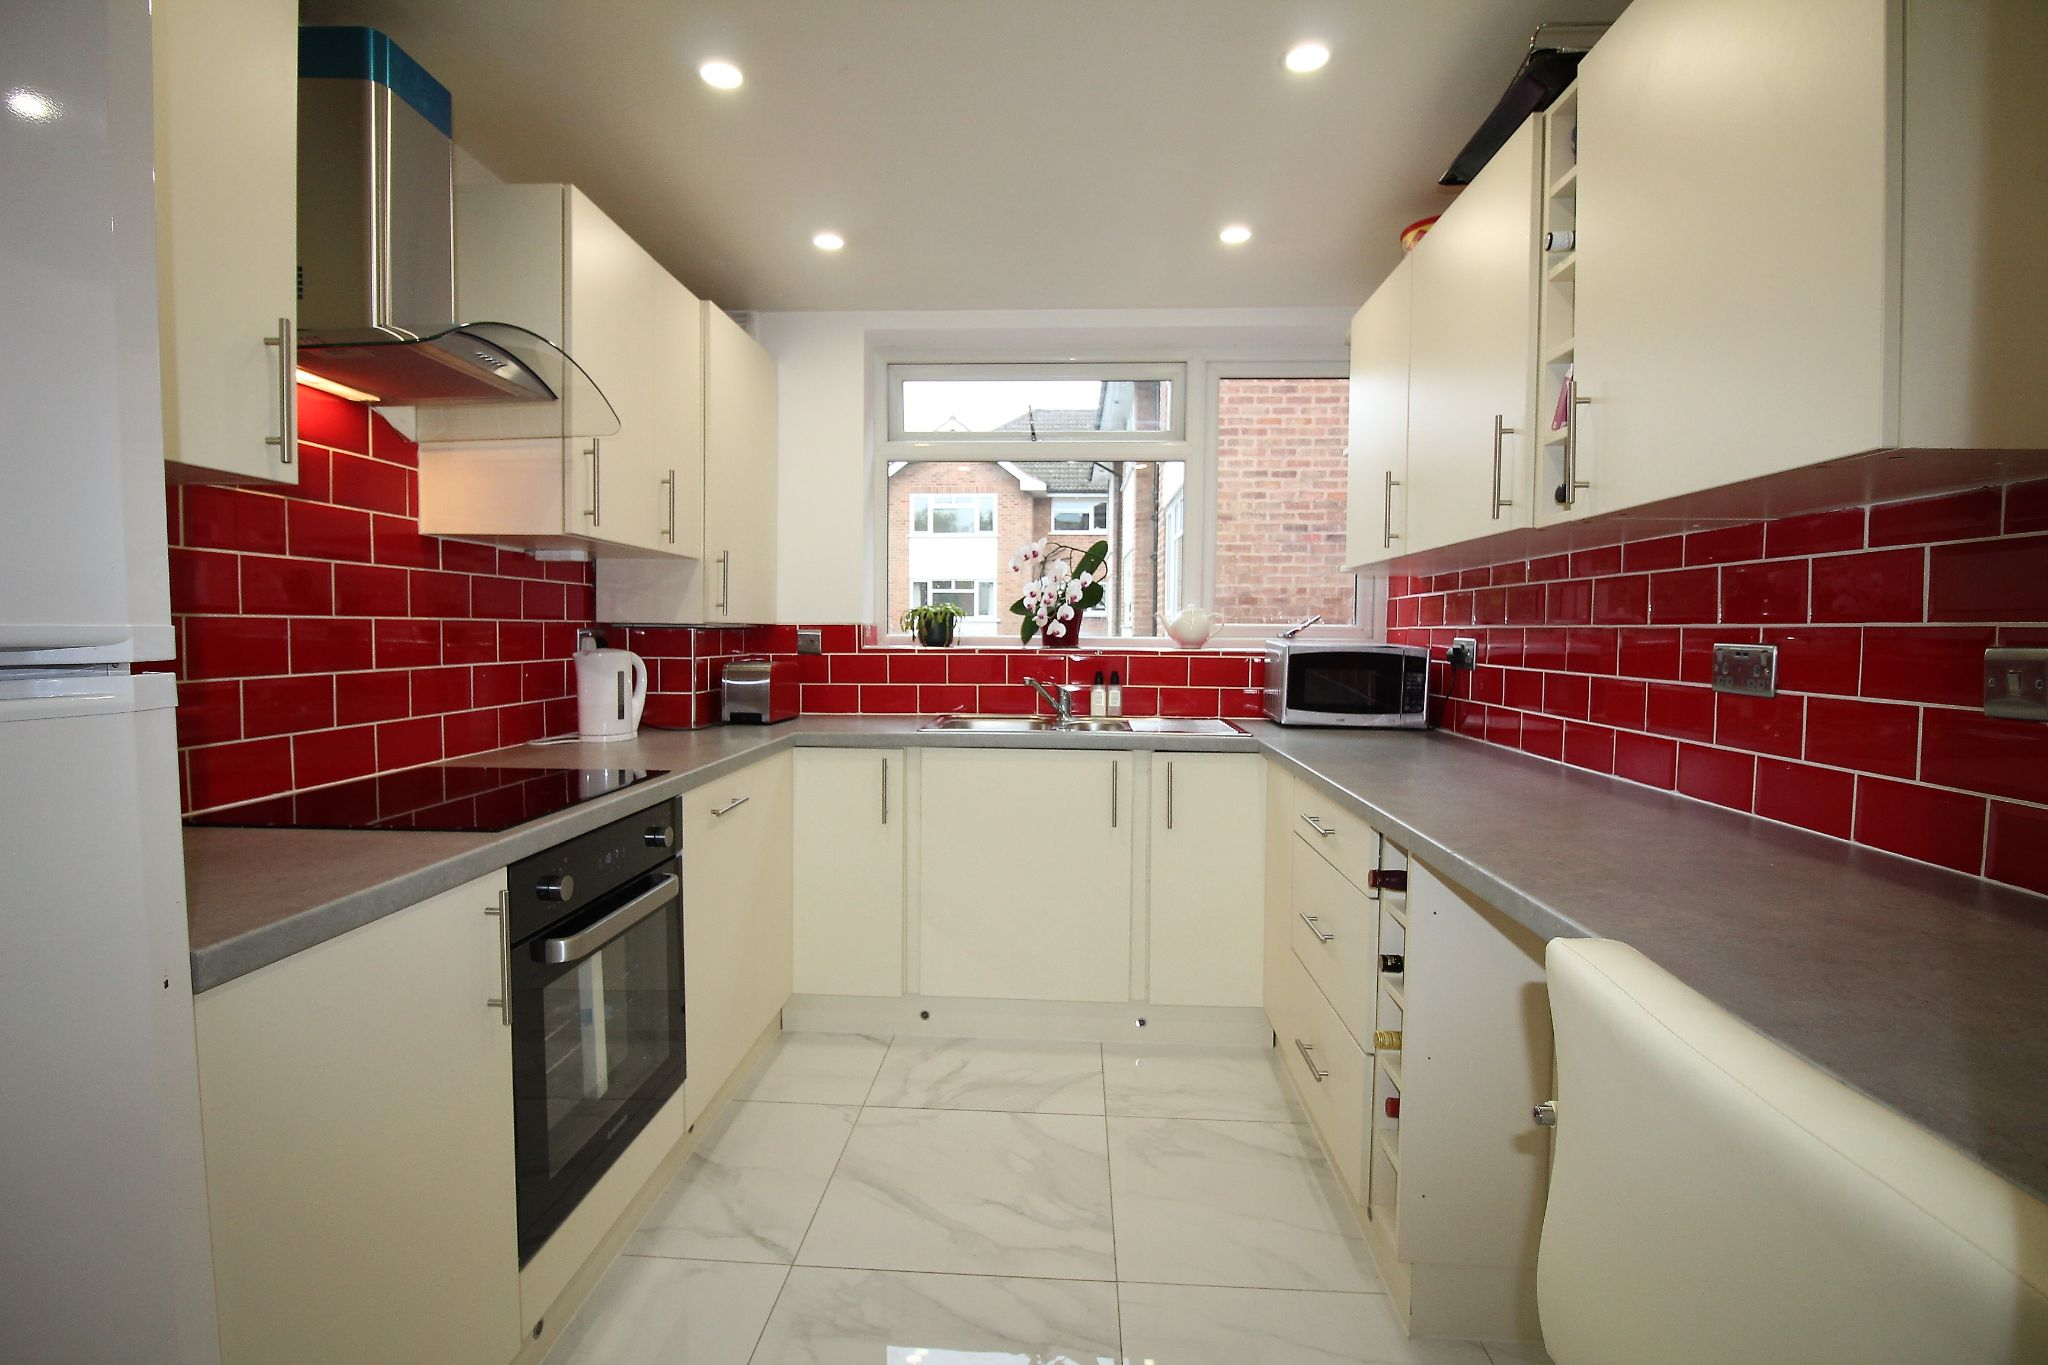 3 bedroom apartment flat/apartment Let Agreed in Solihull - Photograph 3.